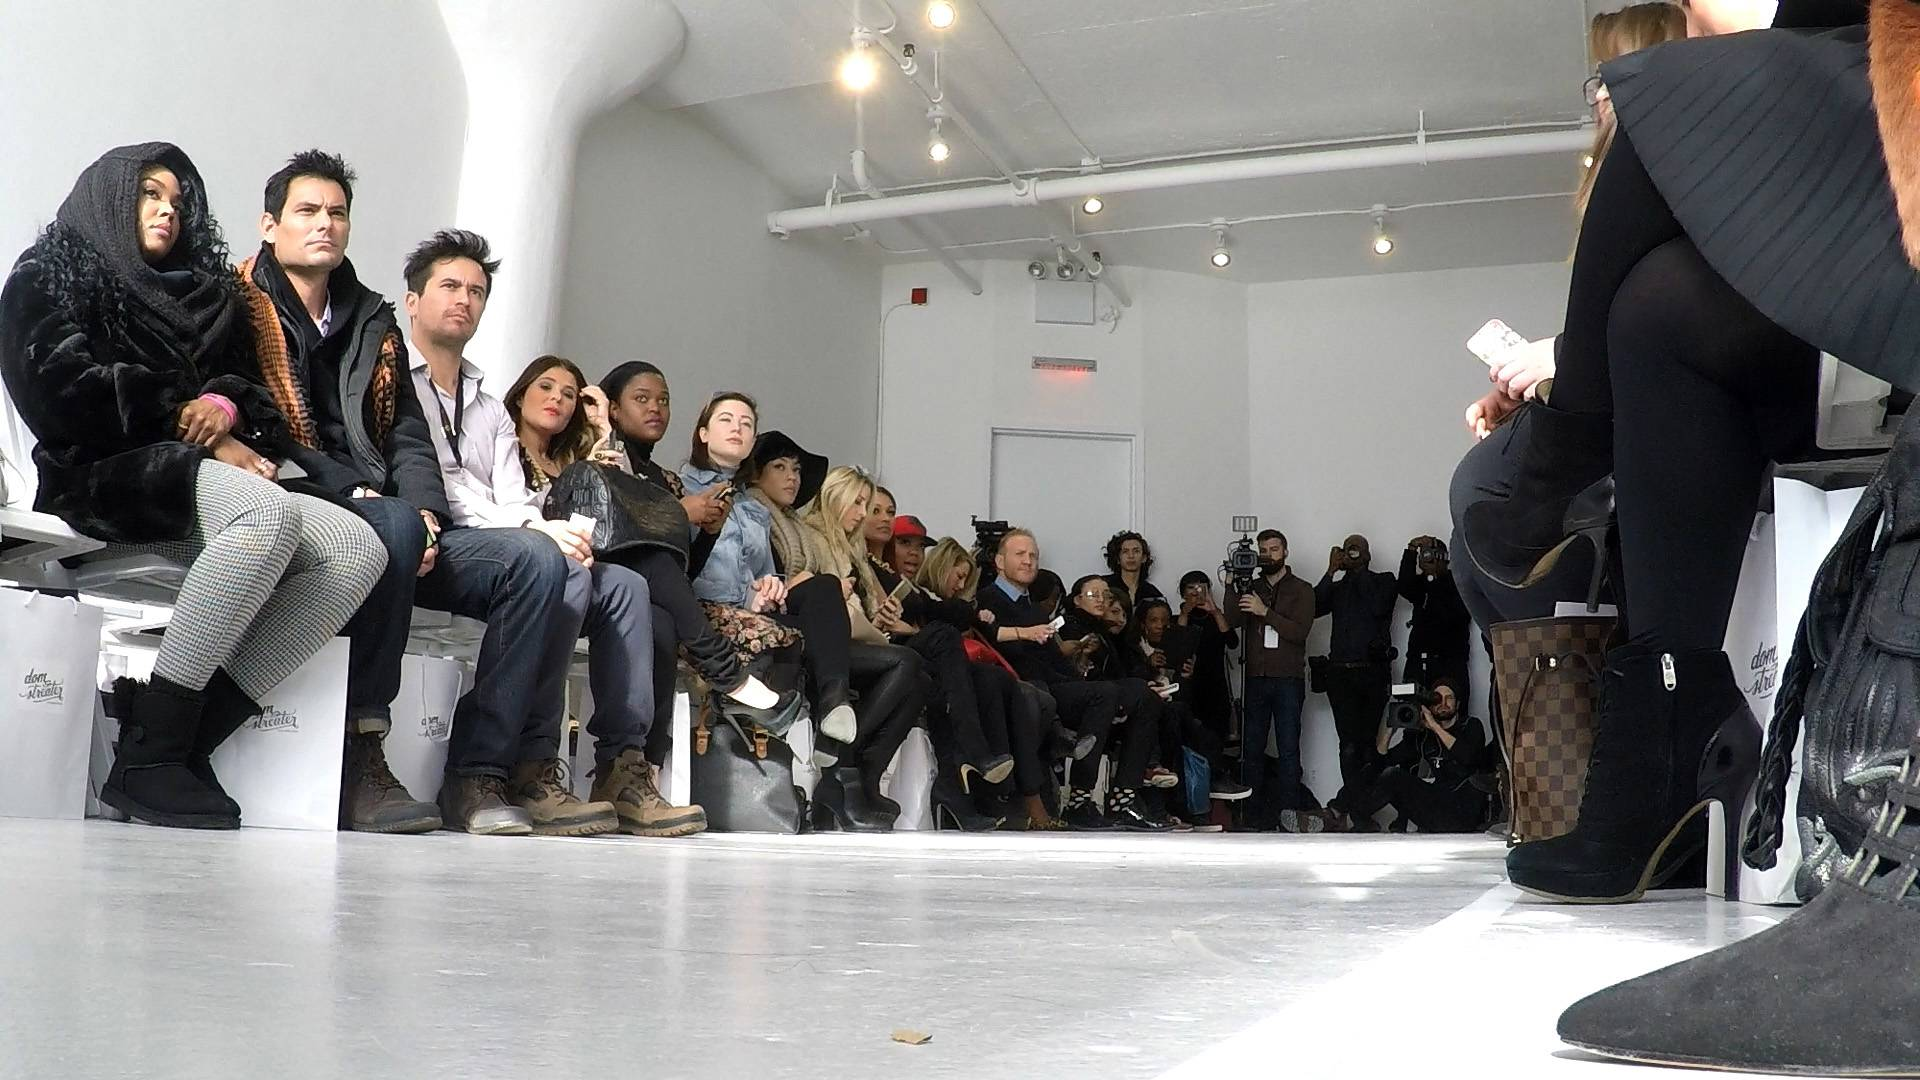 Just Waiting - The audience sat and waited for the anticipation to build before we saw Stink hit the runway.  (Photo: BET)